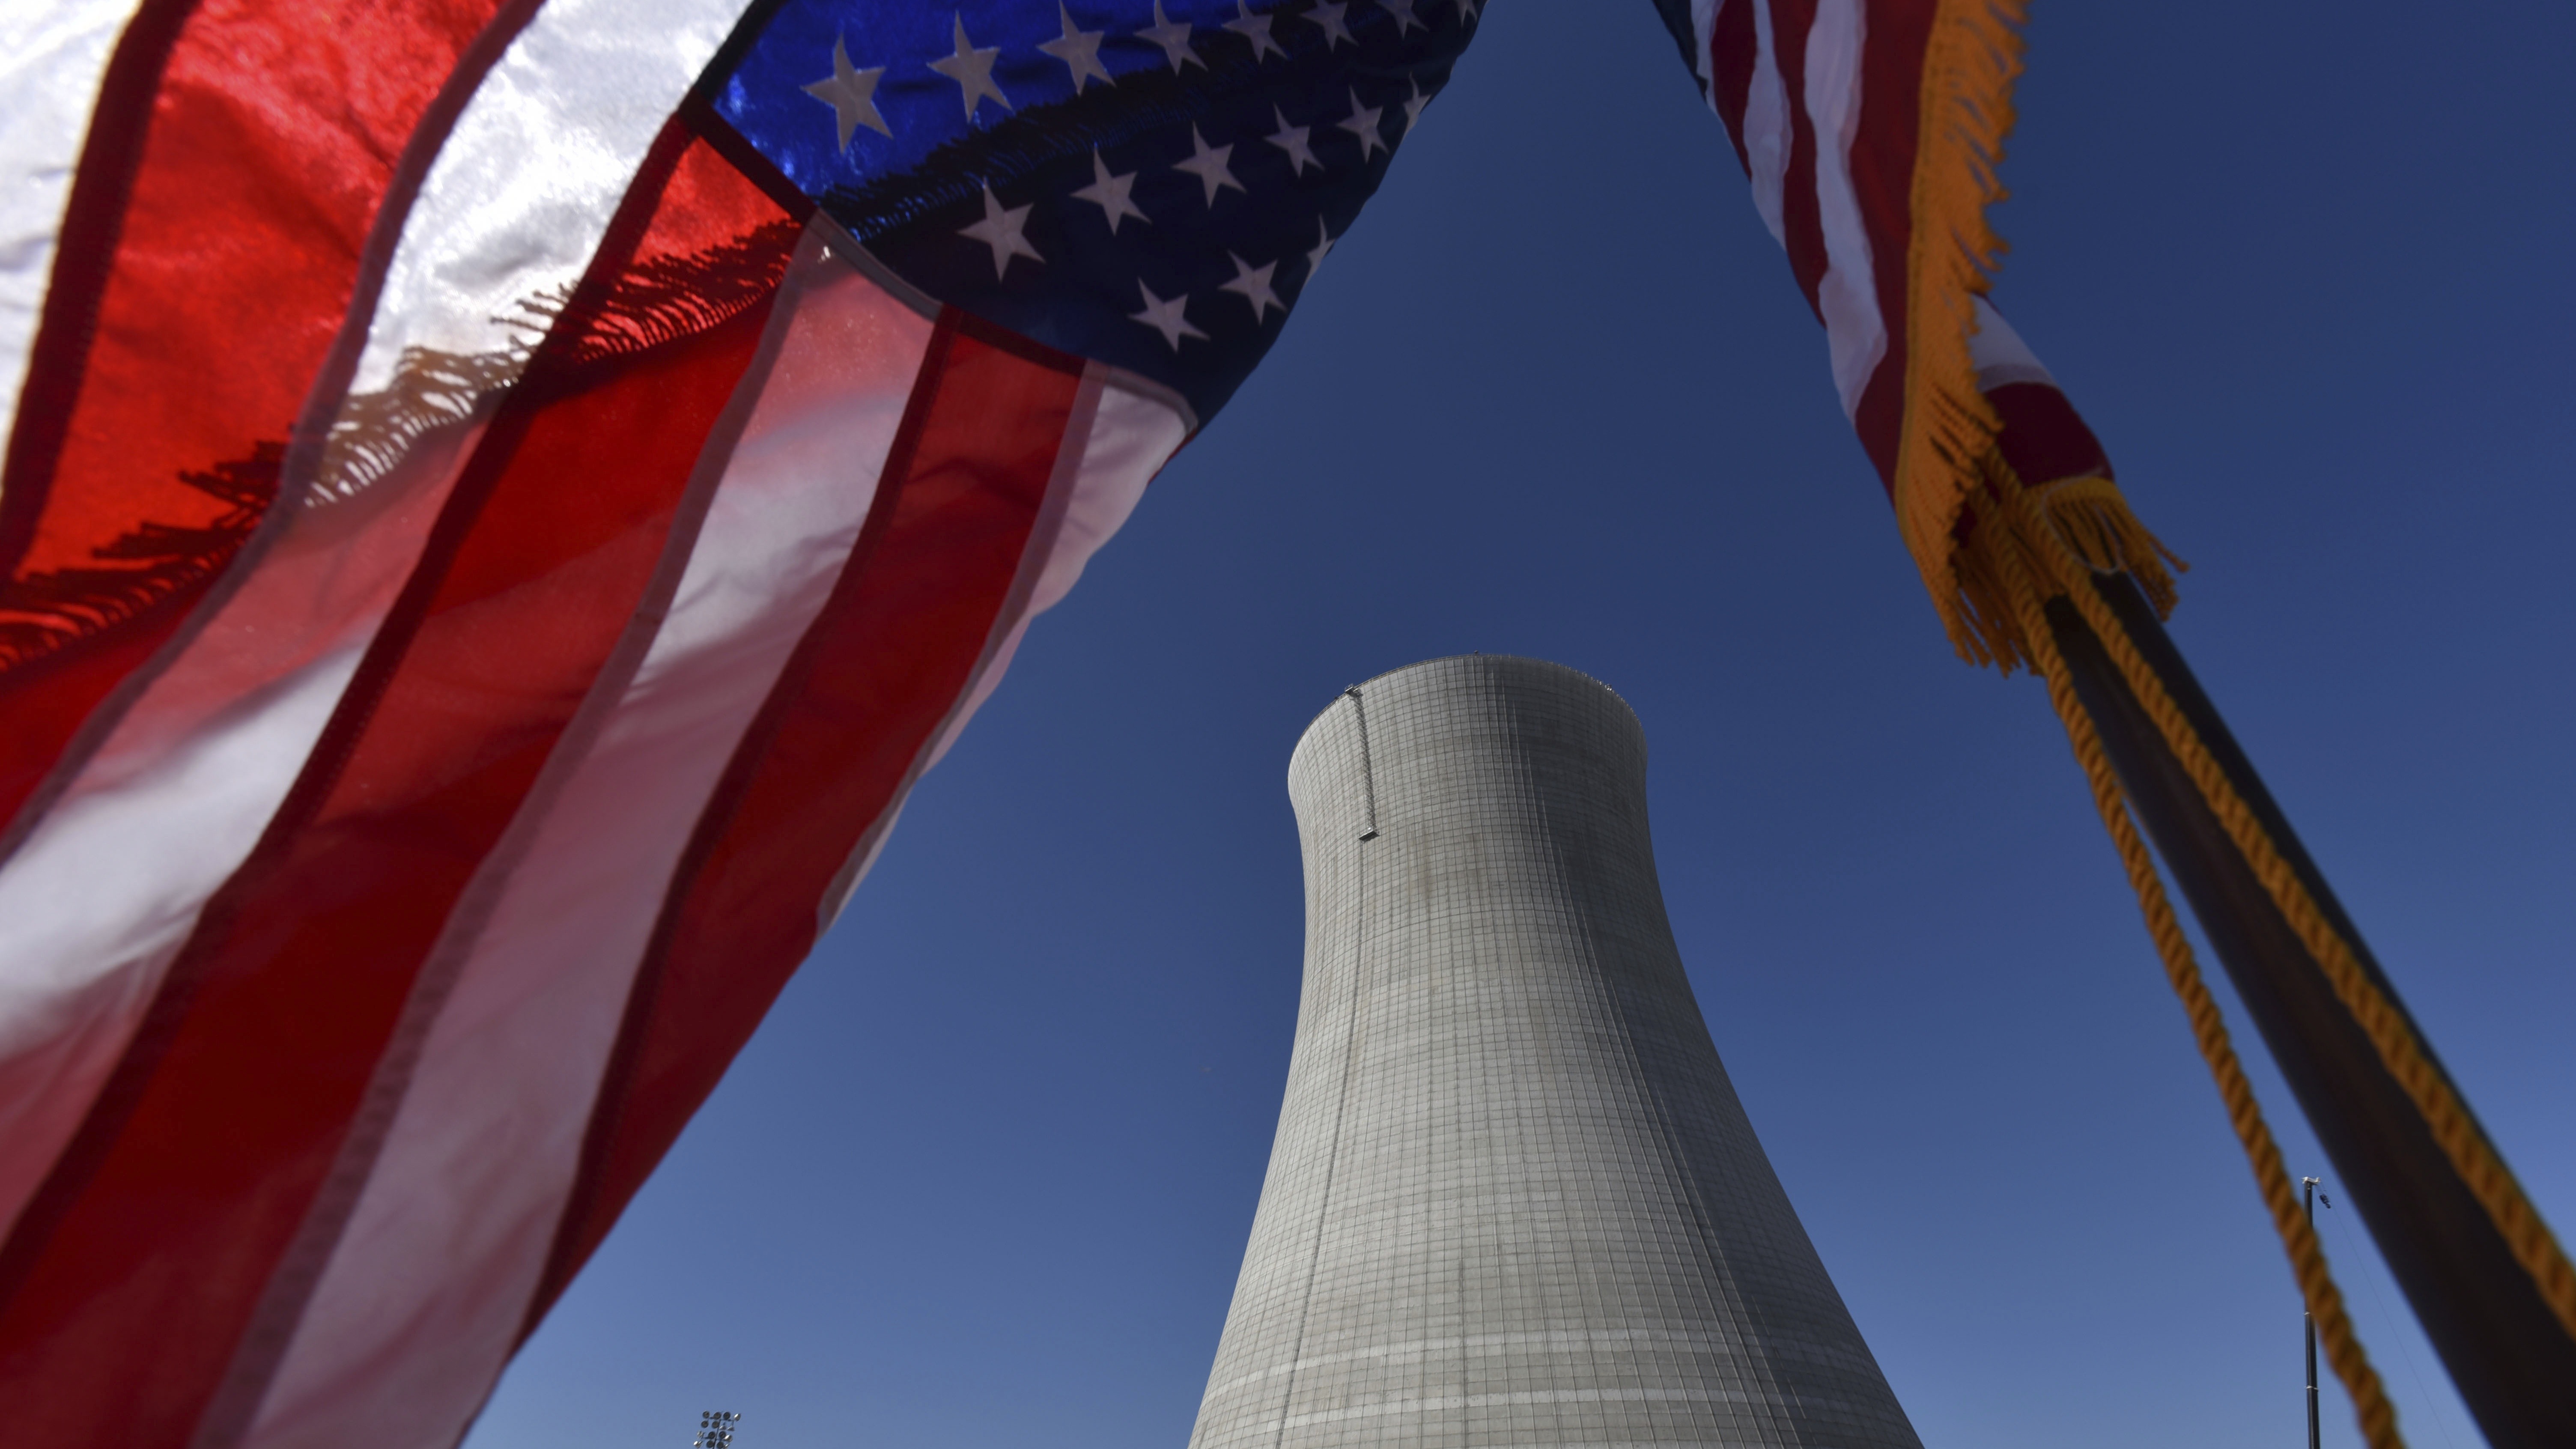 Nuclear Regulatory Commission staff recommendations made public Tuesday would reduce the time and scope of annual inspections at the nation's 90-plus nuclear power plants. Some other inspections would be cut from every two years to every three years. (Hyosub Shin/Atlanta Journal-Constitution via AP)